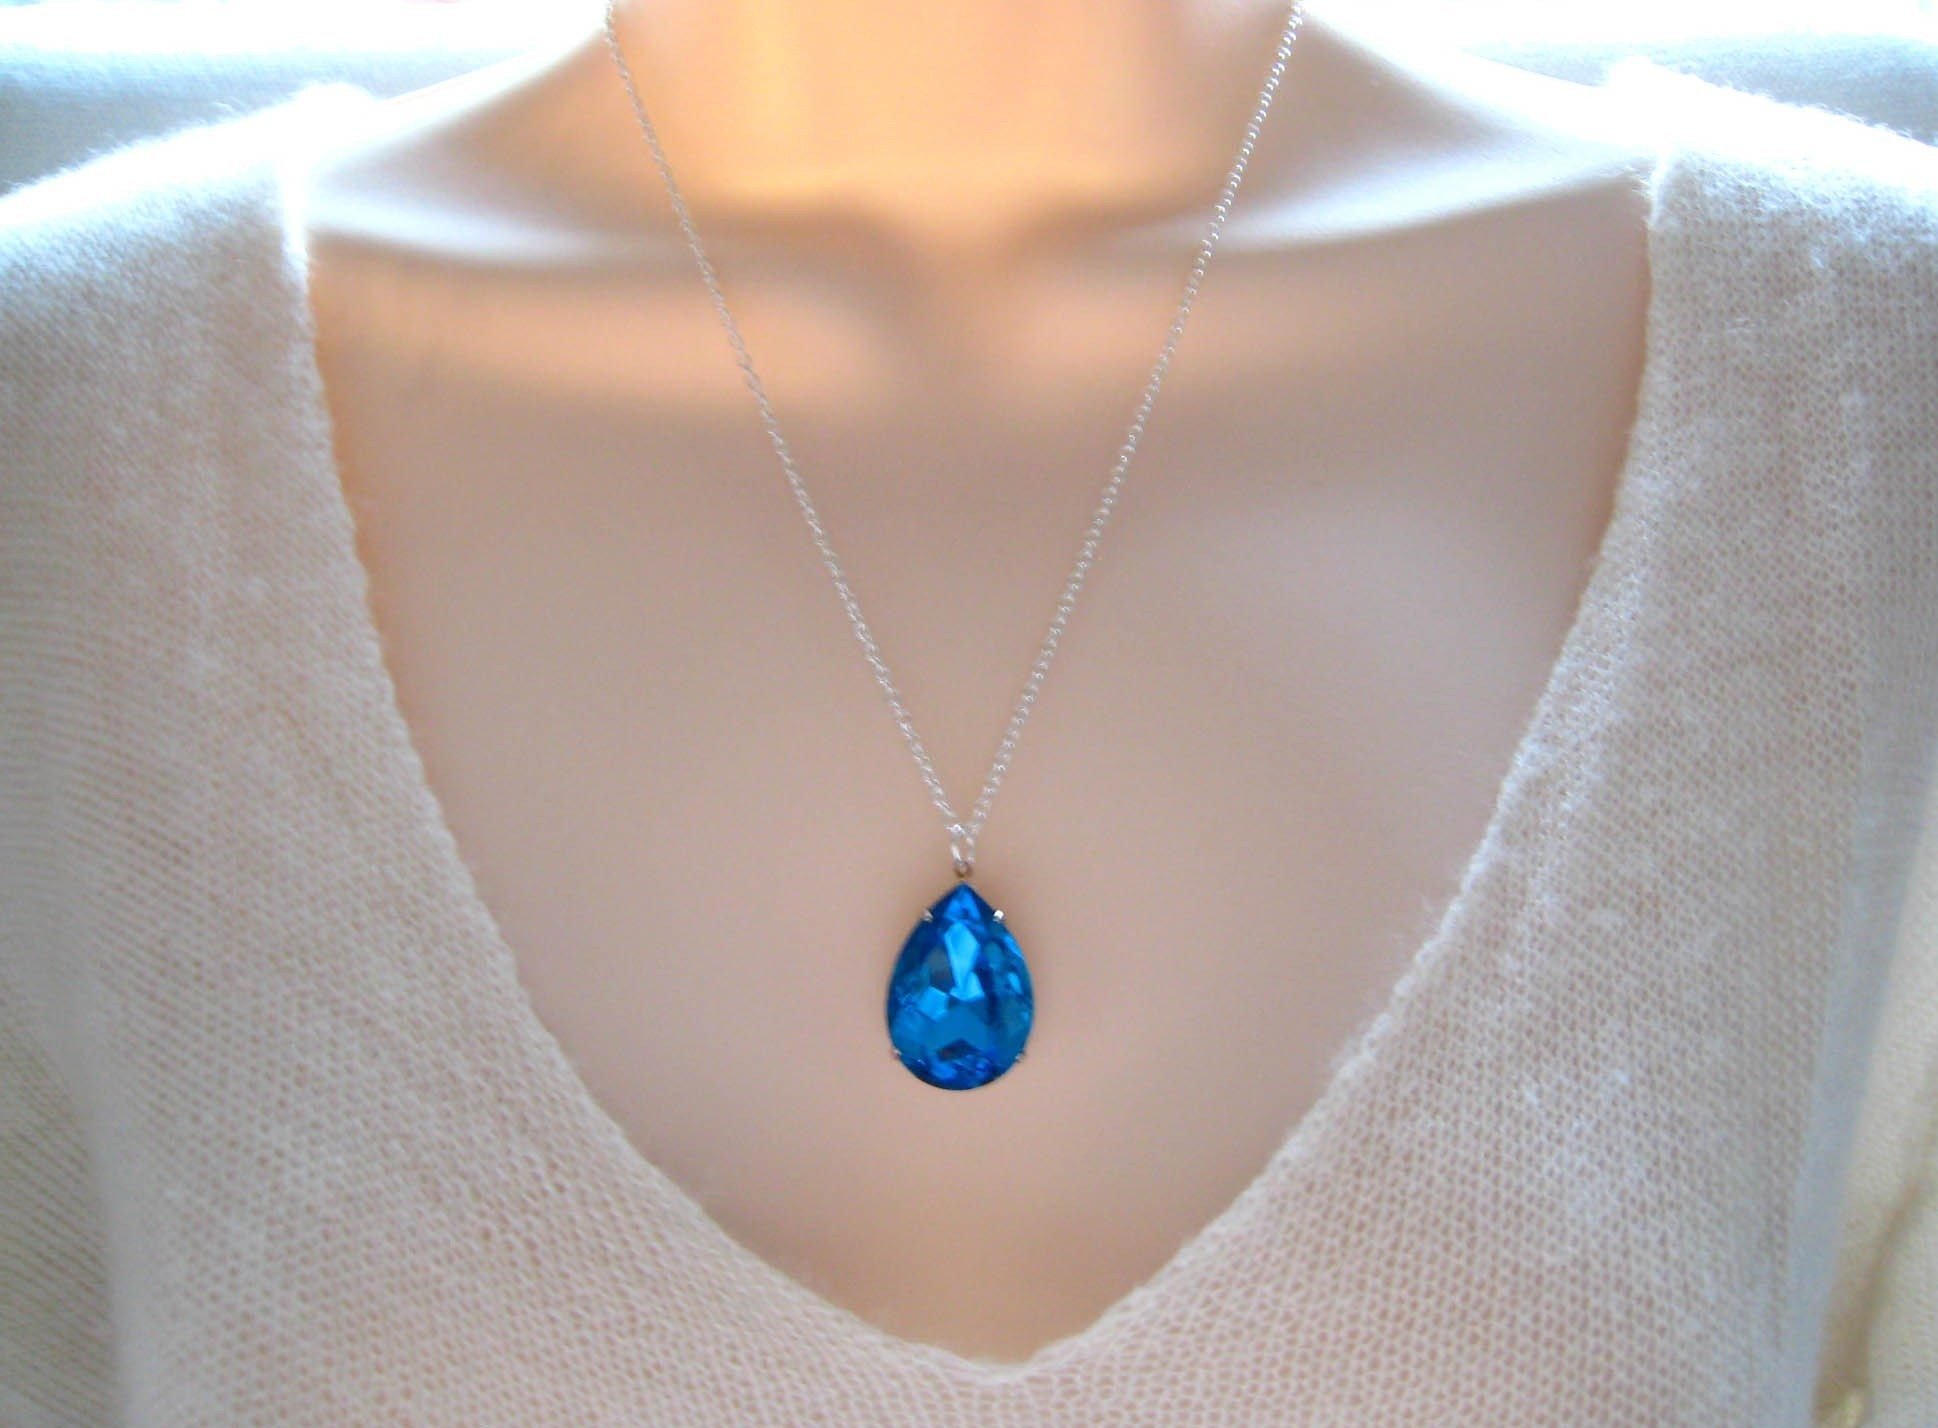 Vintage aquamarine tear drop necklace The Sweetest Occasion